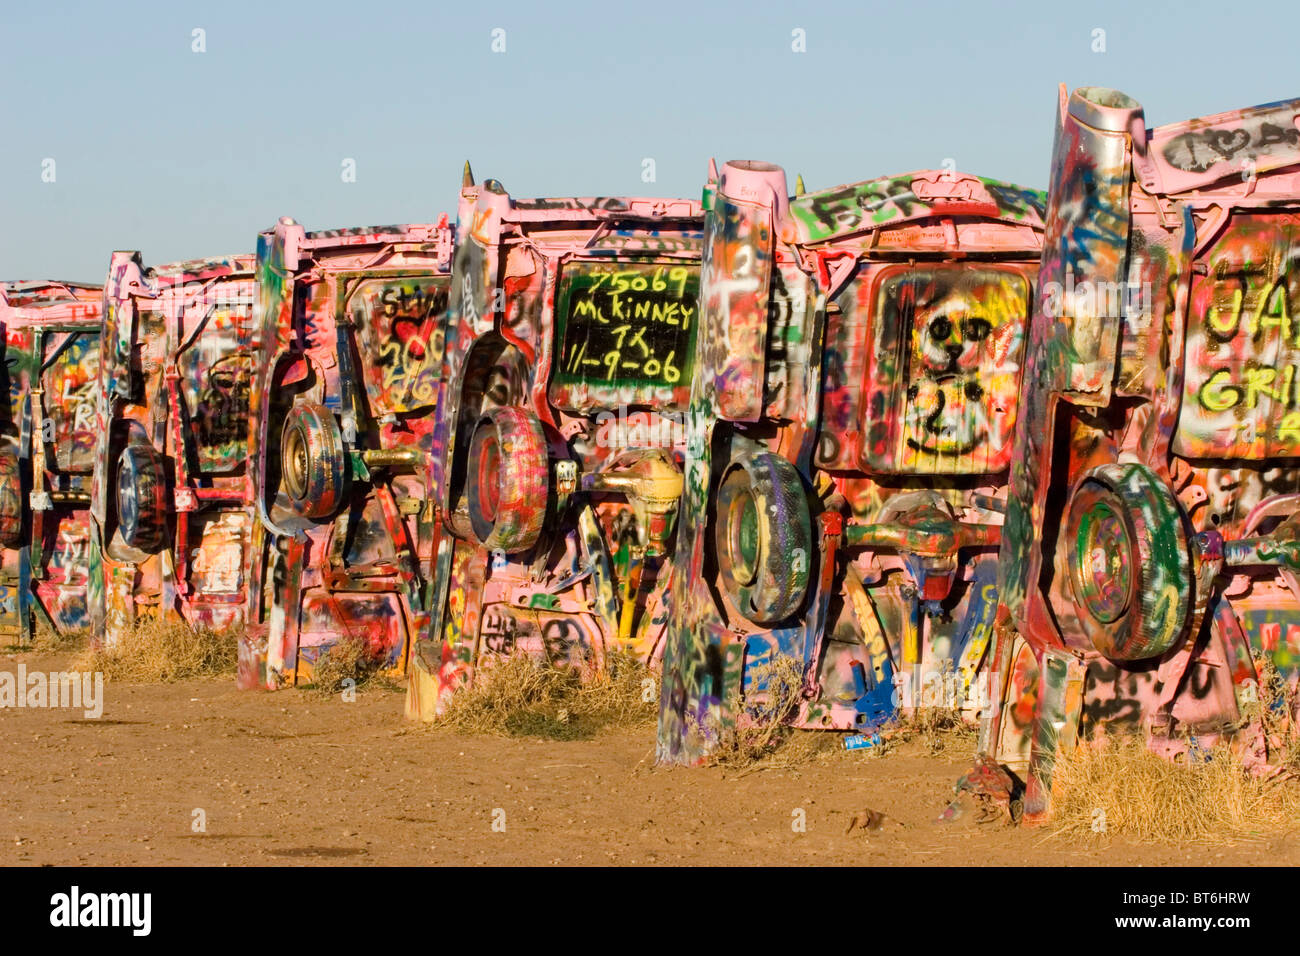 Cadillac Ranch, Amarillo, Texas, United States. Construit le long de la route 66 en 1974 par Stanley Marsh. Photo Stock